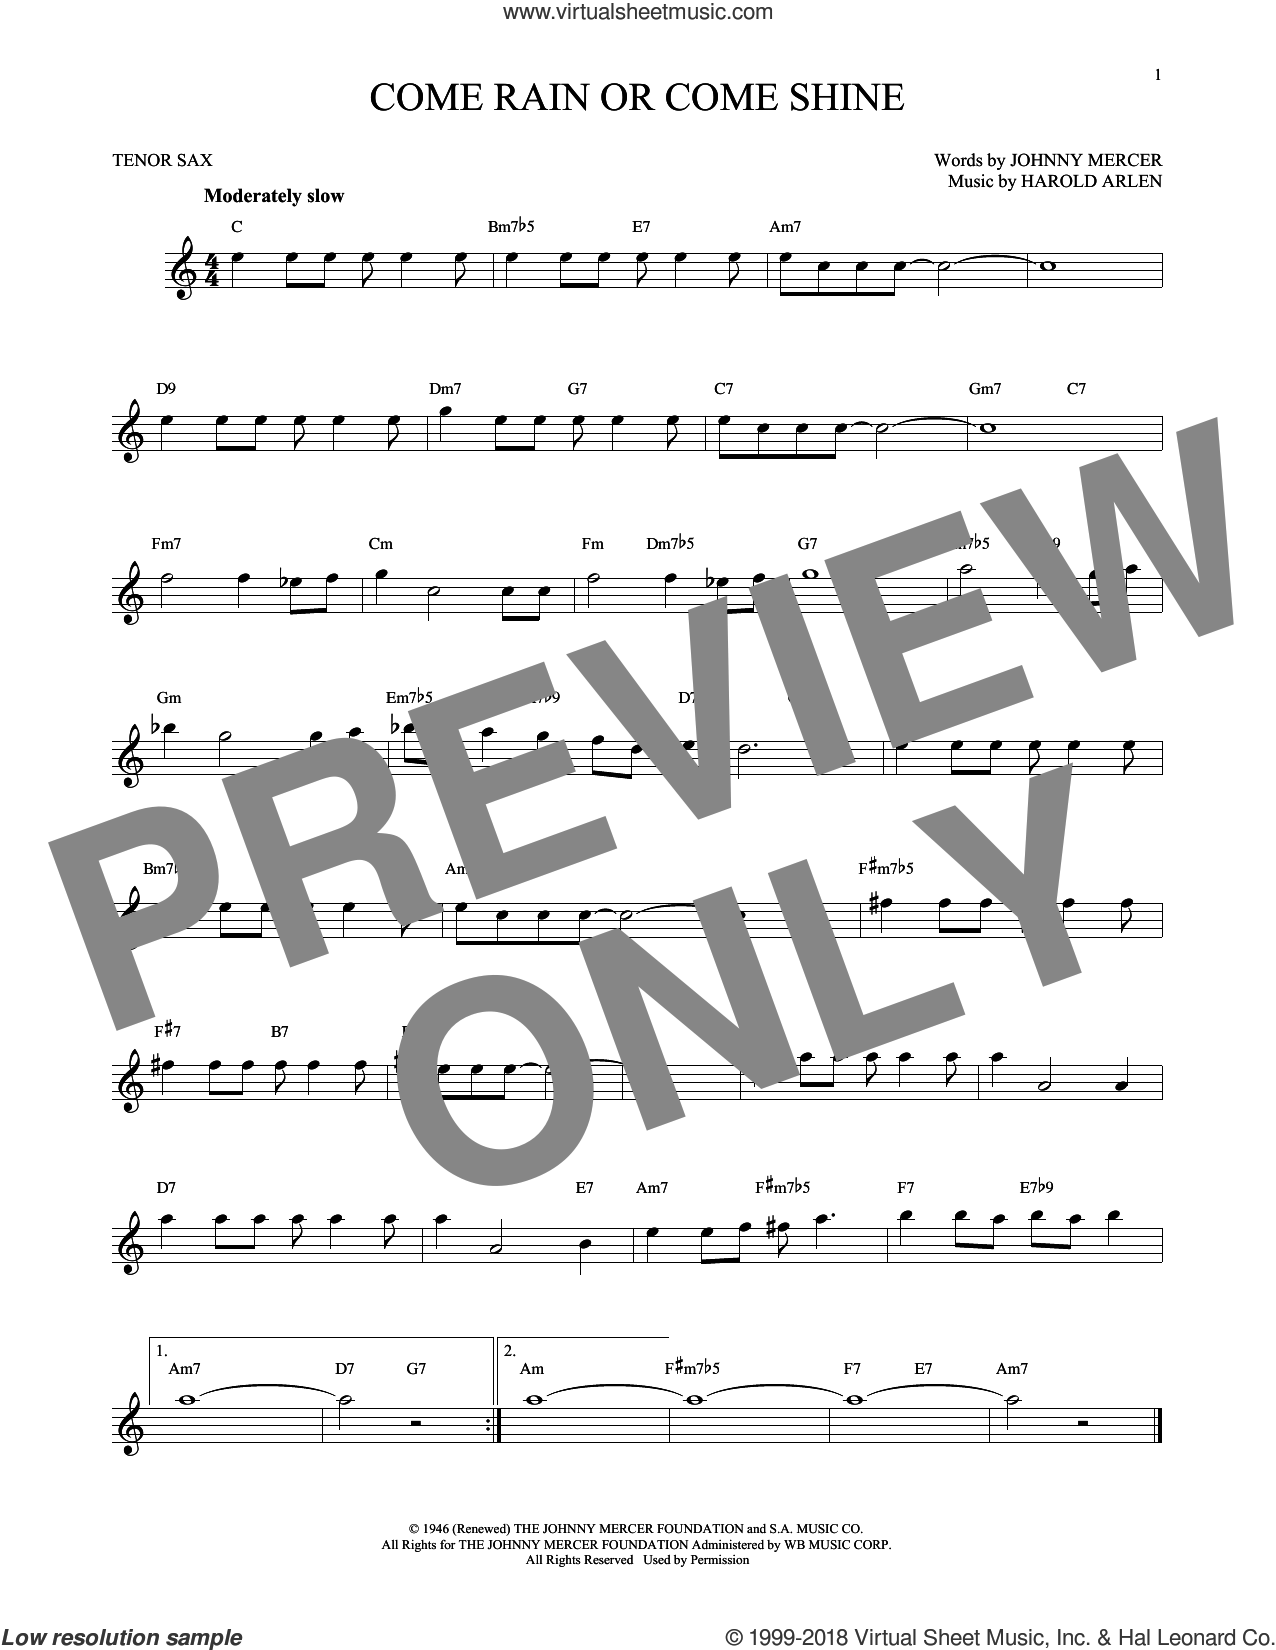 Come Rain Or Come Shine sheet music for tenor saxophone solo by Johnny Mercer and Harold Arlen, intermediate skill level